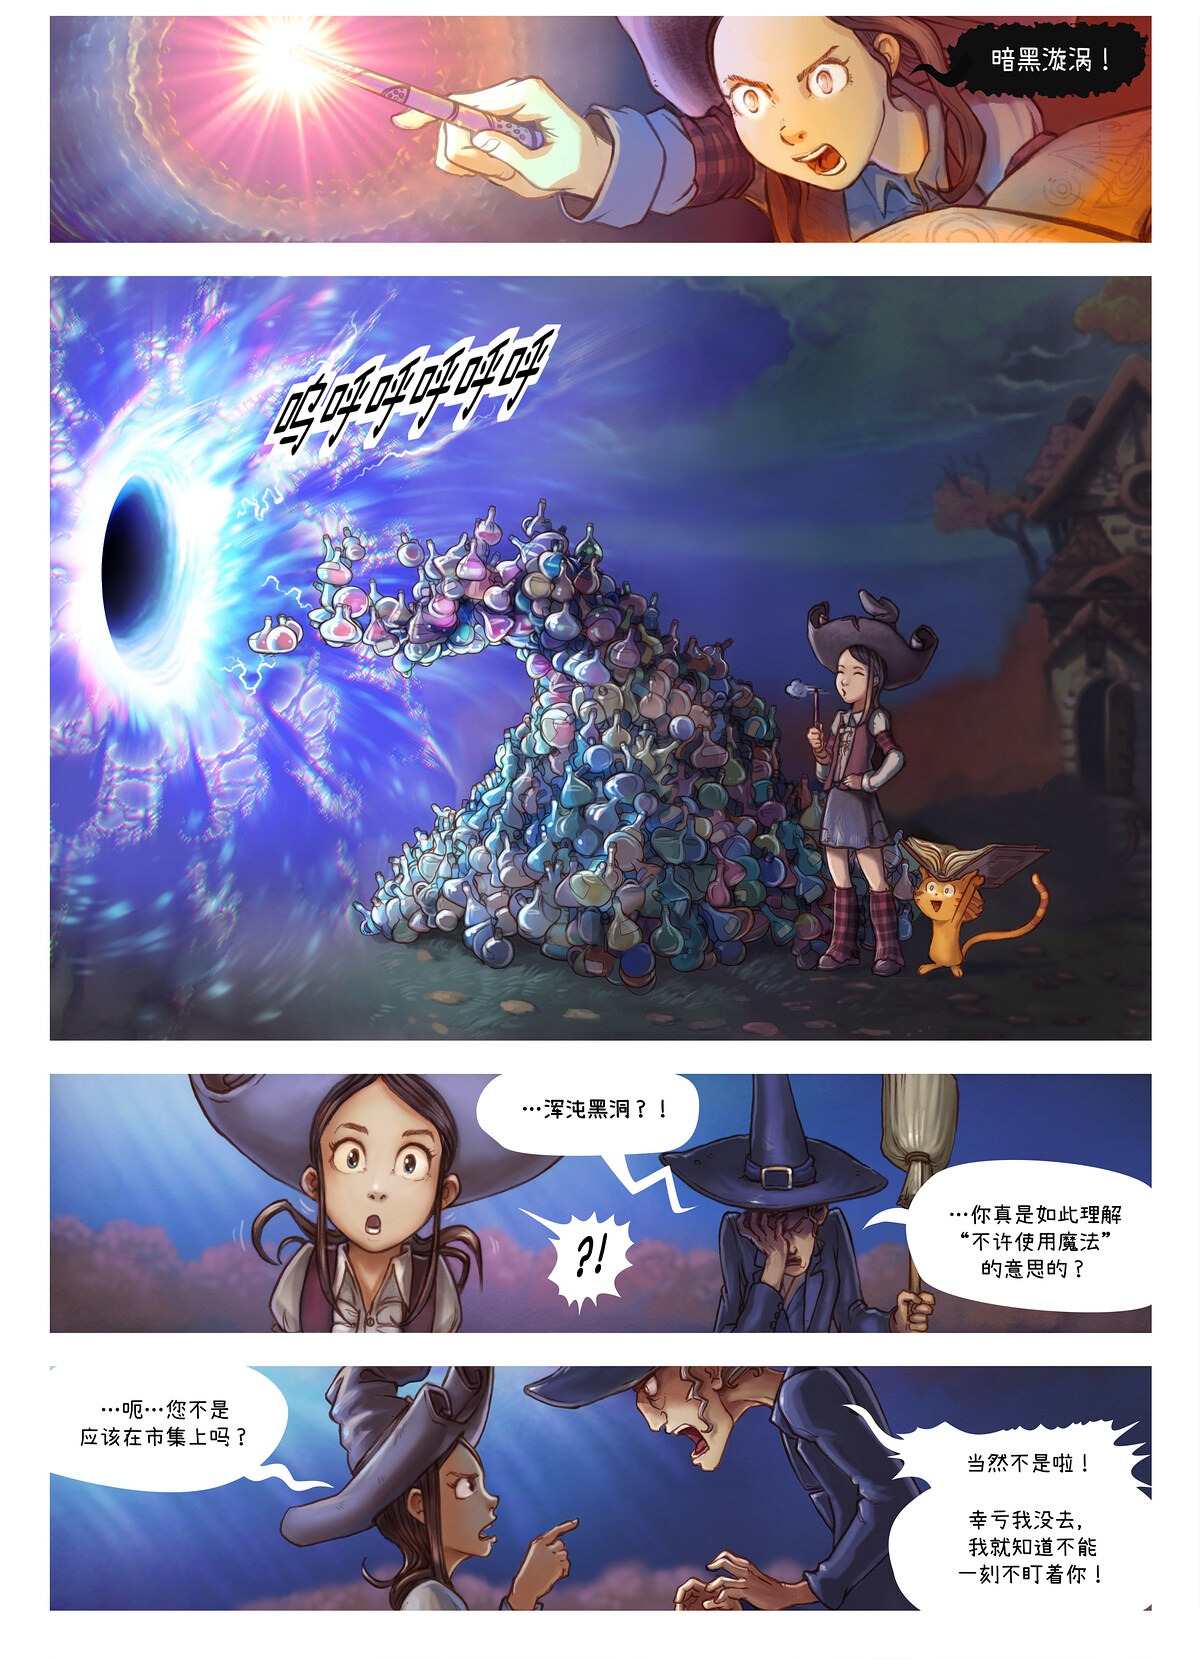 A webcomic page of Pepper&Carrot, 漫画全集 12 [cn], 页面 4